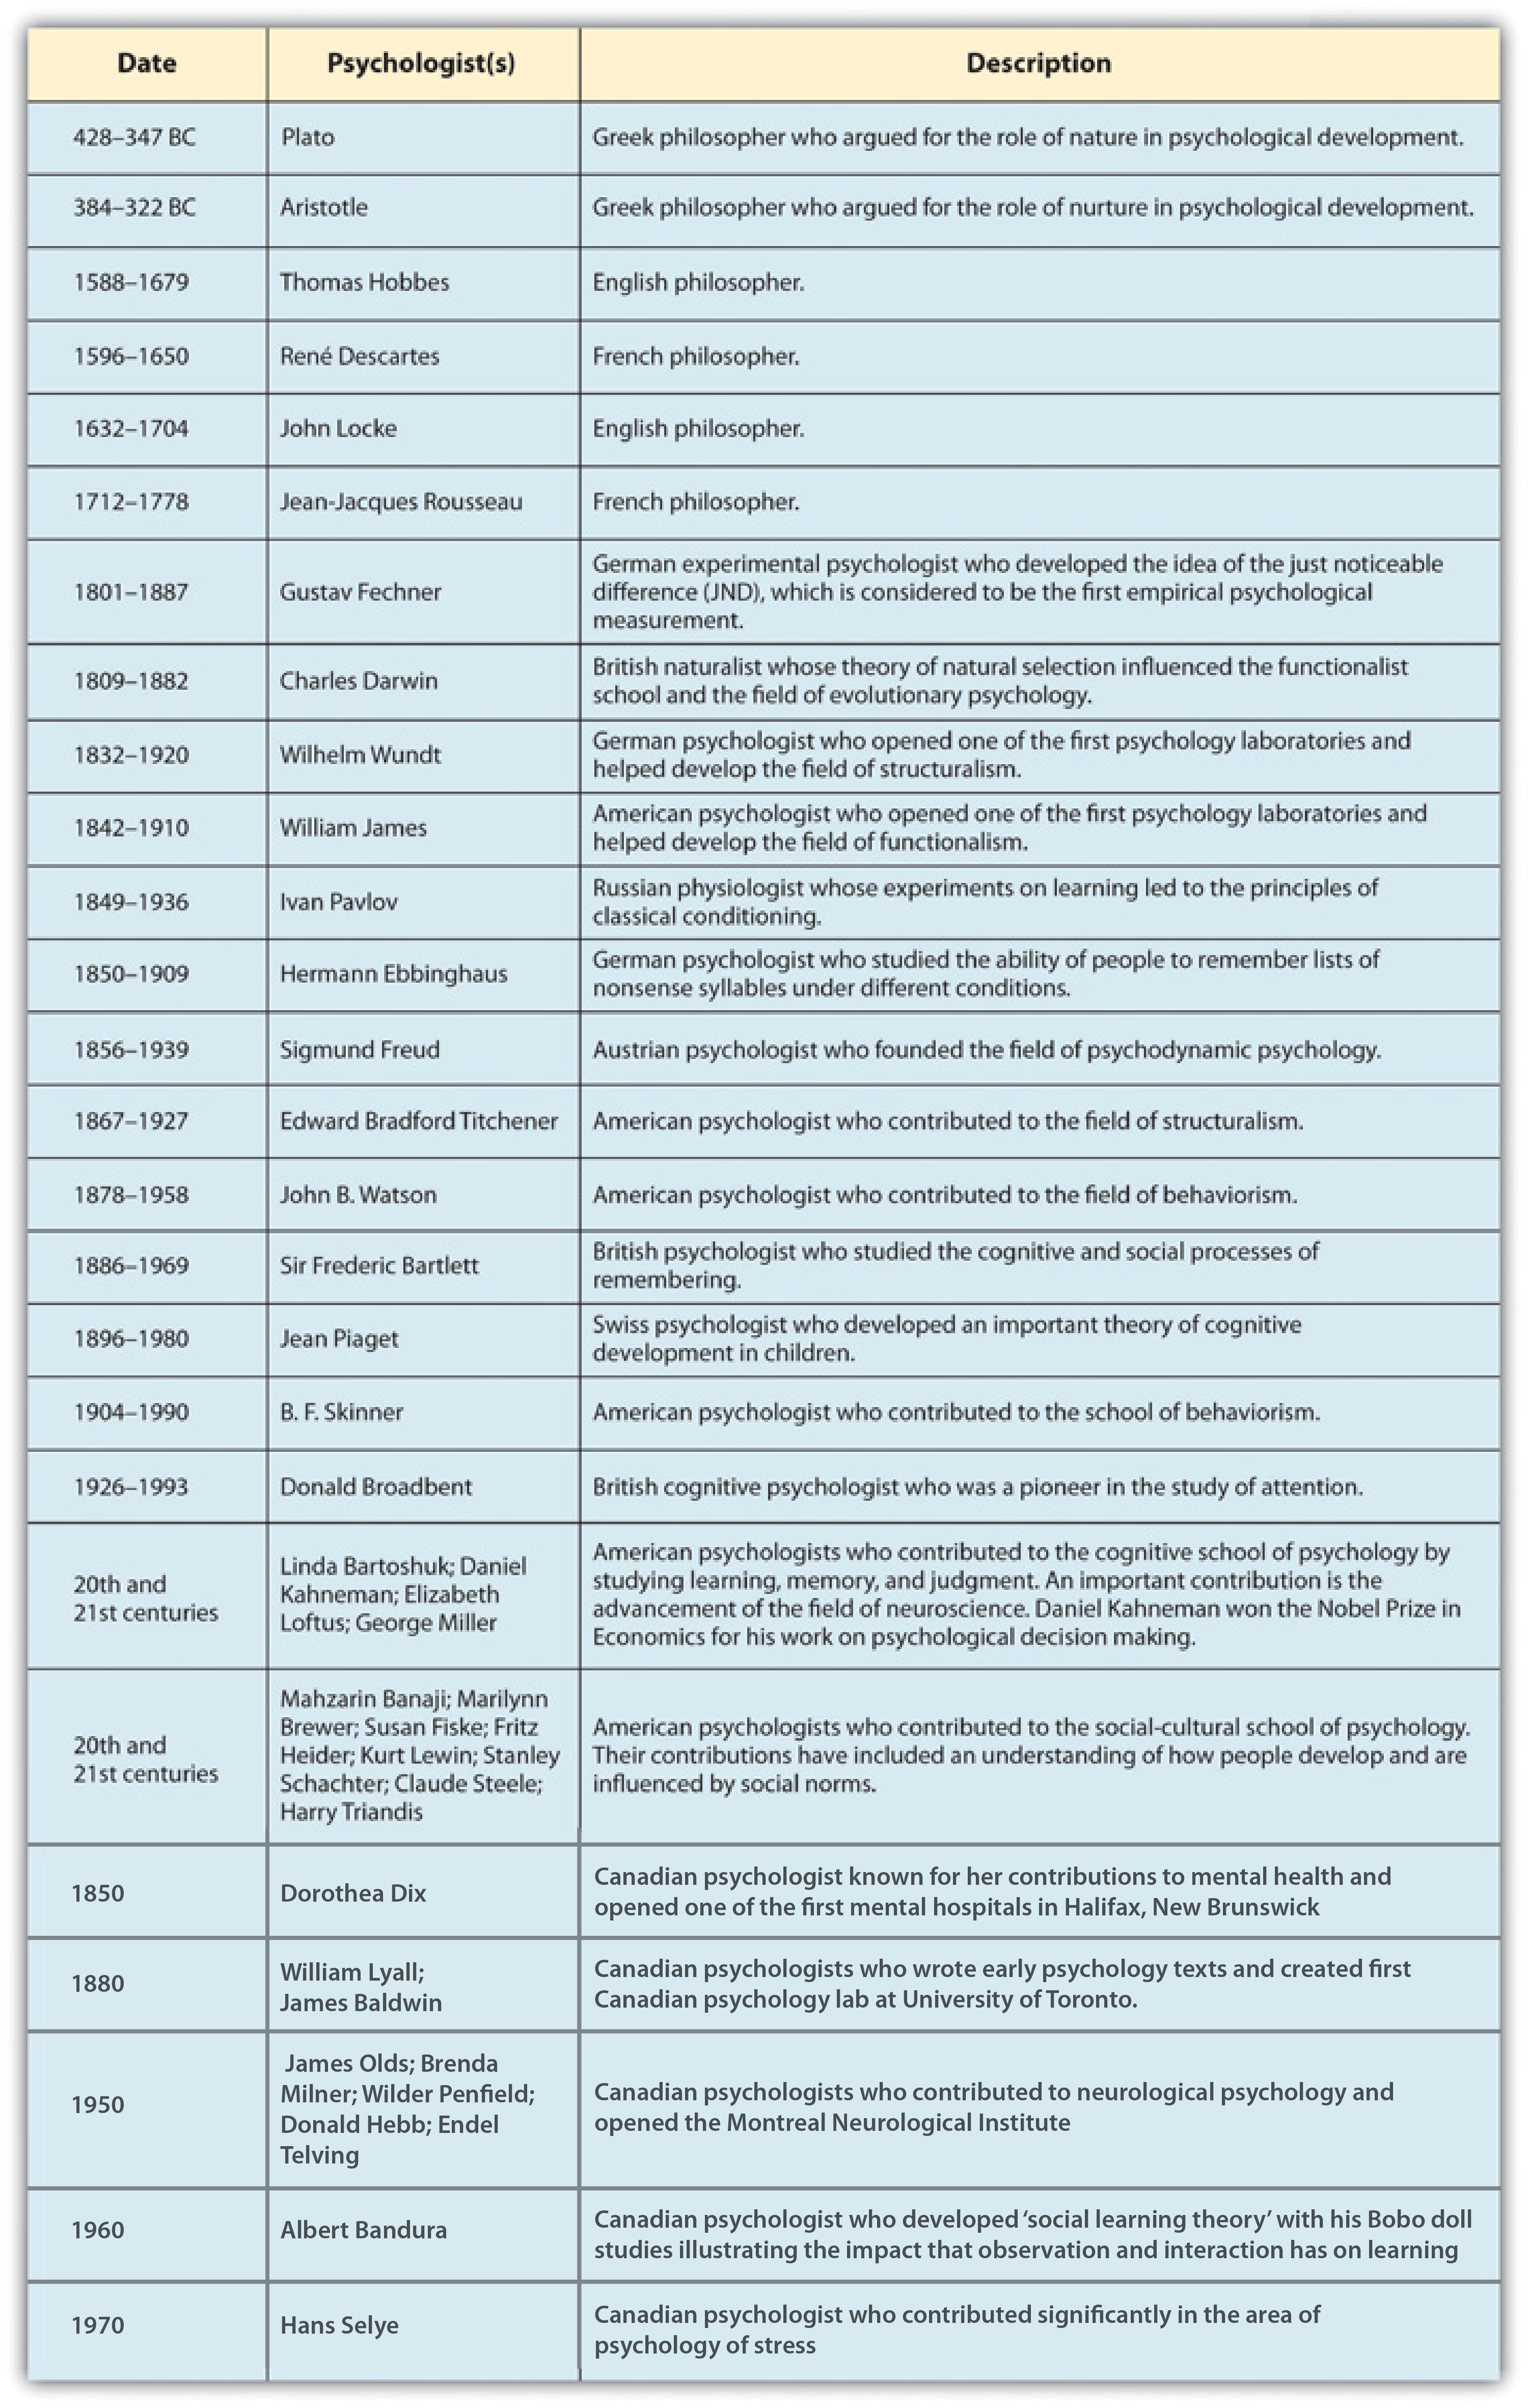 history of psychology timeline They say that psychology has a long past, but a short history learn more about how psychology began, its history, and where it is today.